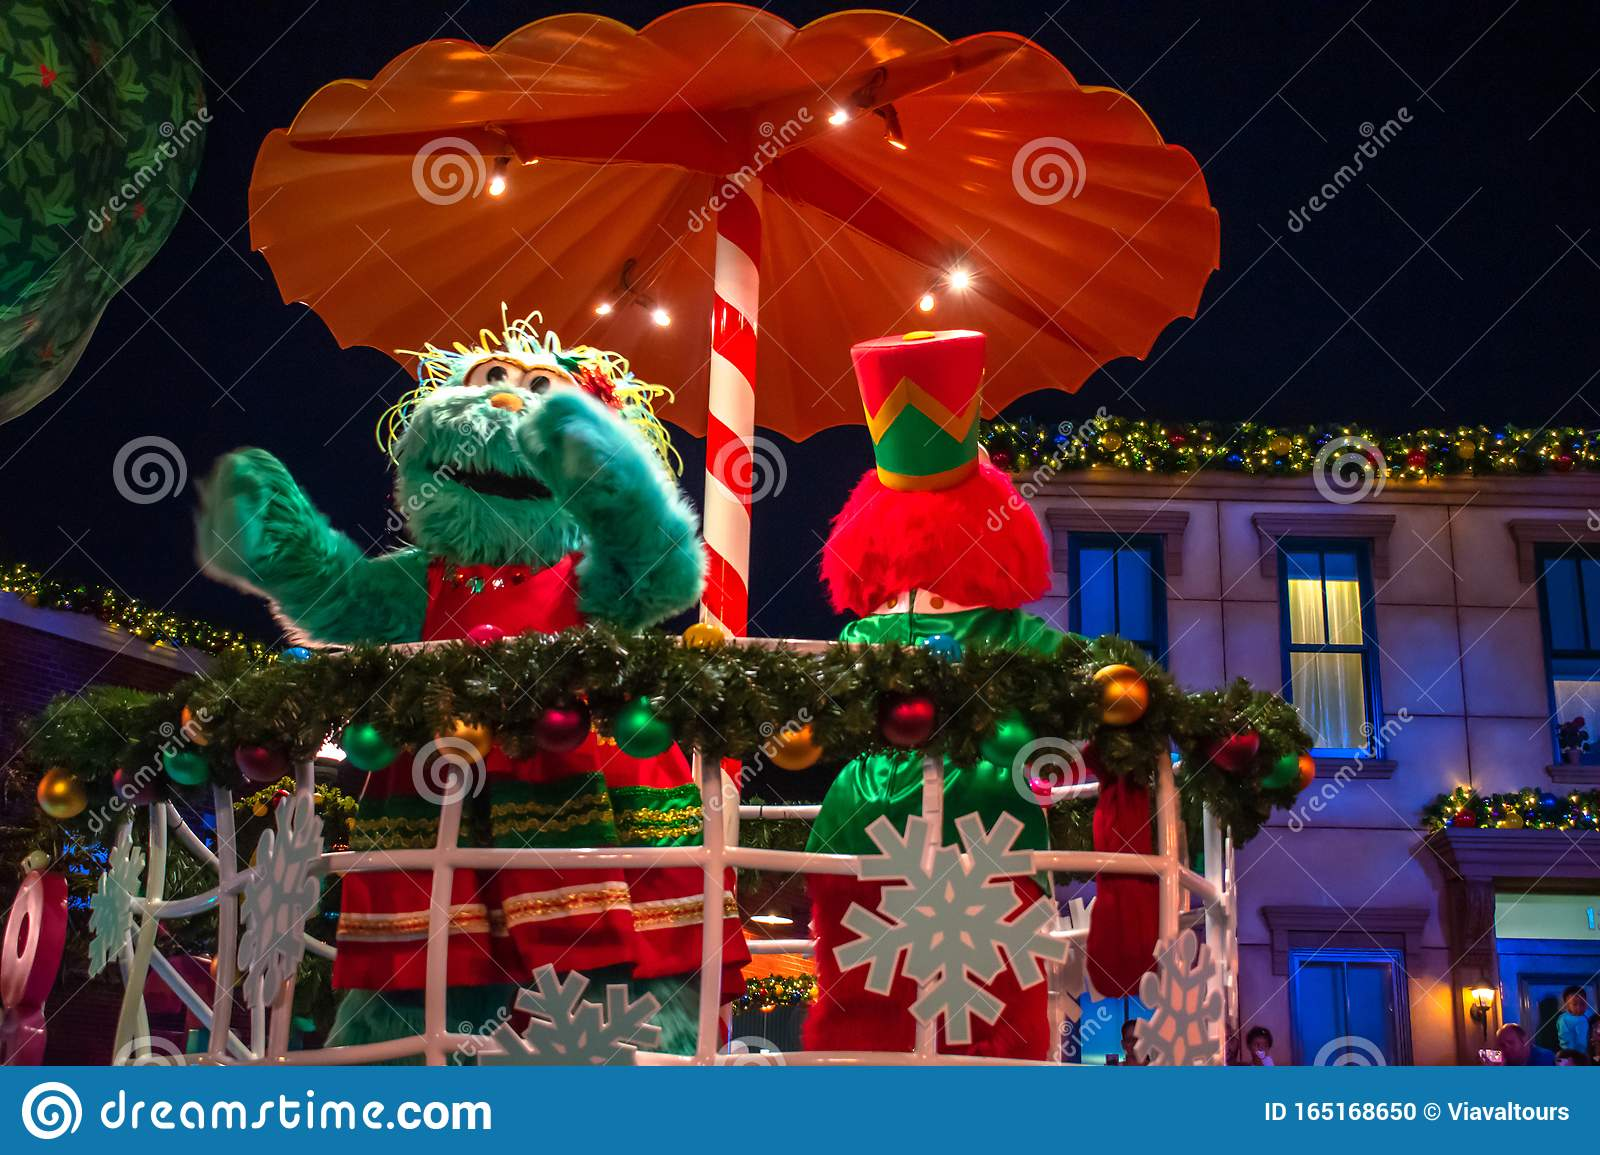 Elmo And Rosita In Sesame Street Christmas Parade At